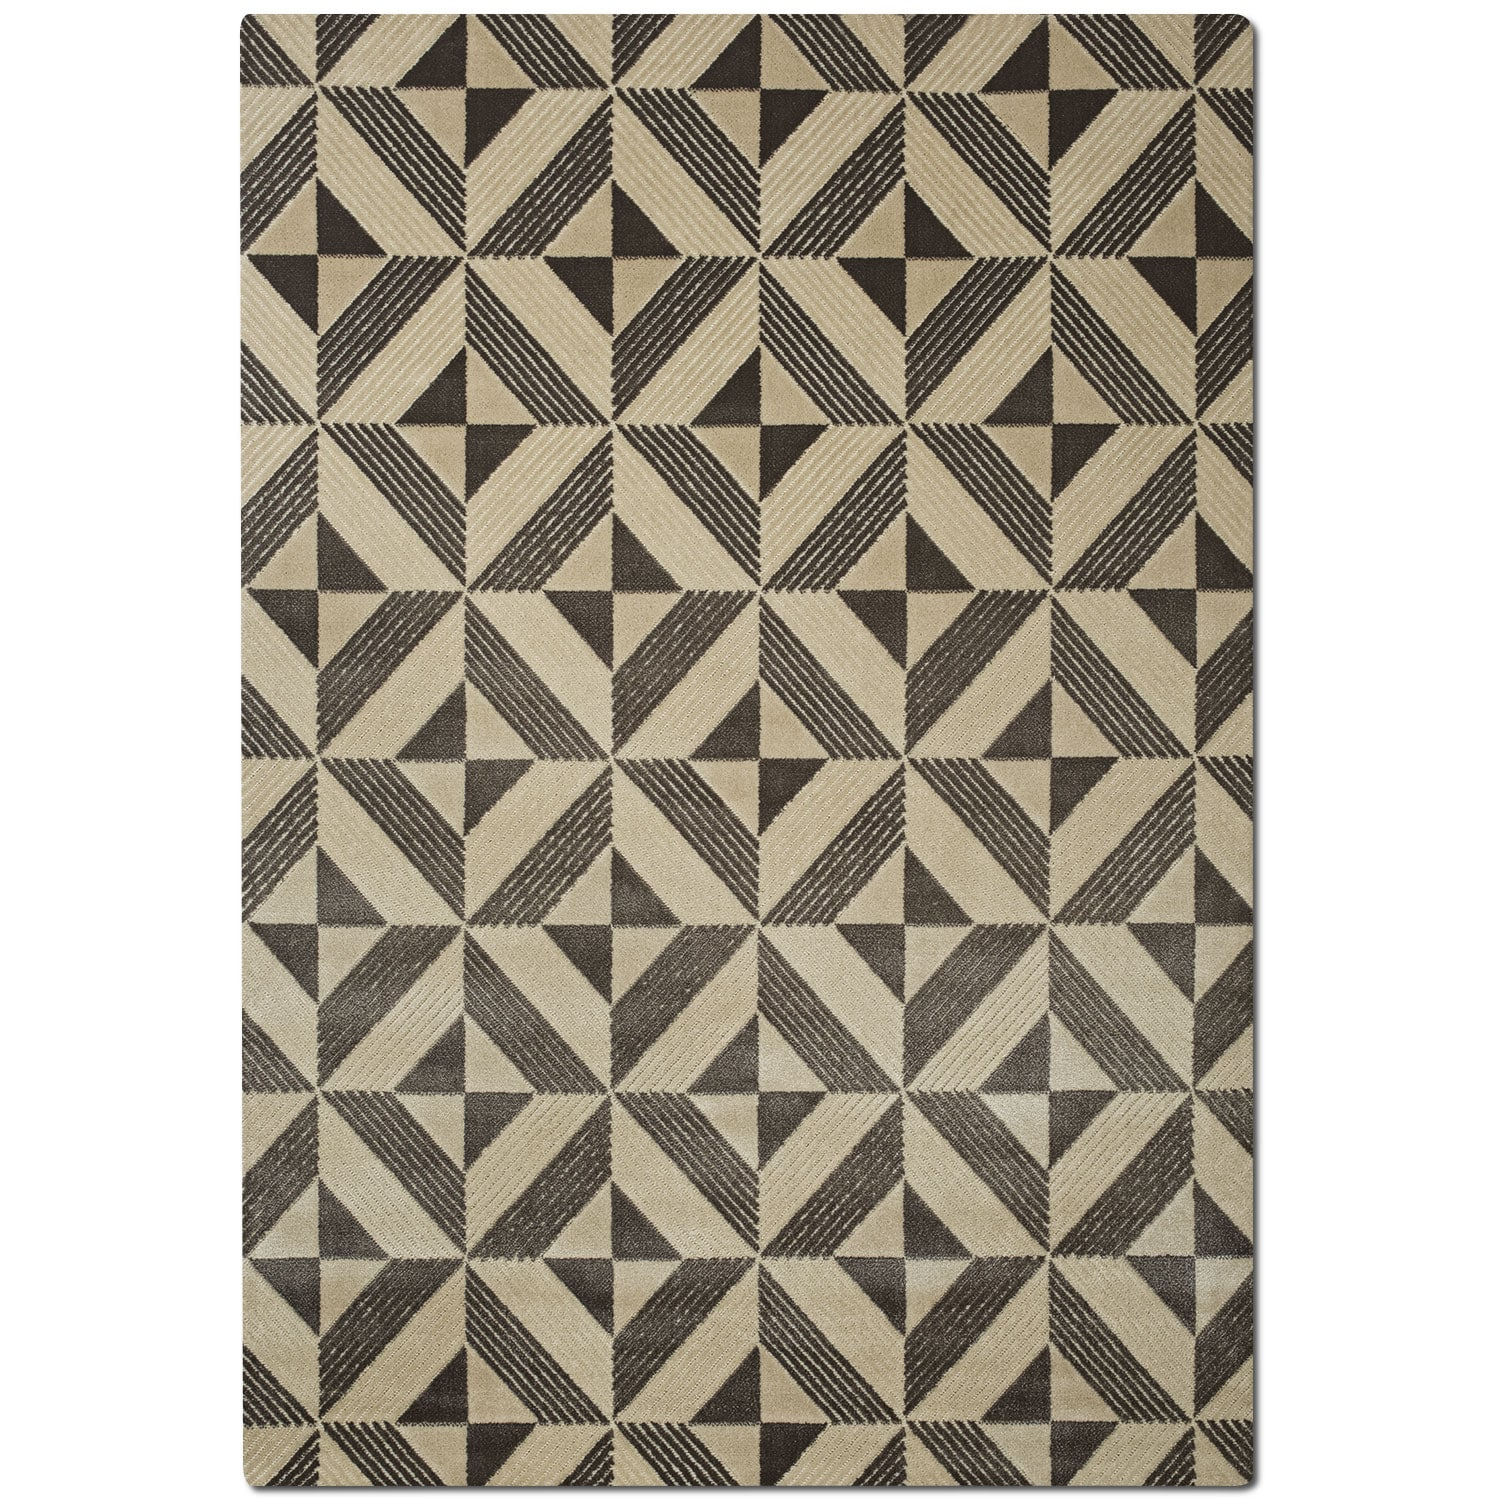 Rugs - Metro 8' x 10' Area Rug - Charcoal and Ivory